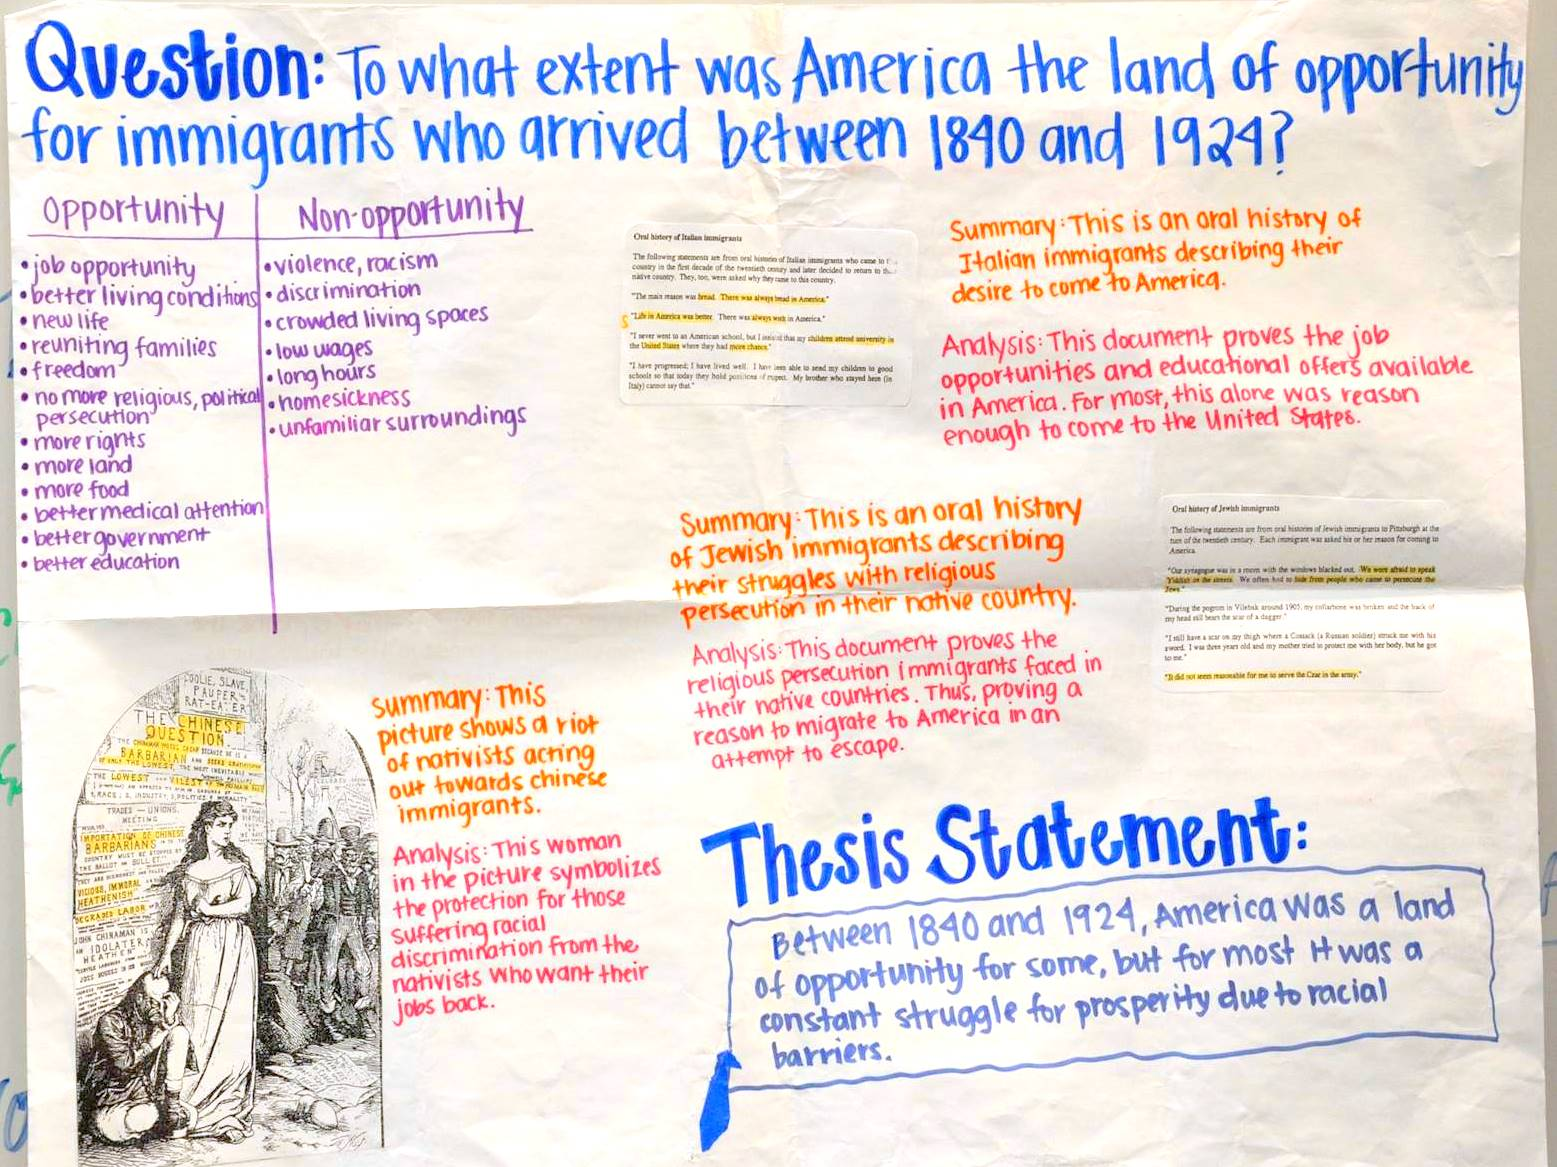 apush example long essay The long essay question on the ap us history exam is designed to test your ability to apply knowledge of history in a complex, analytic manner.